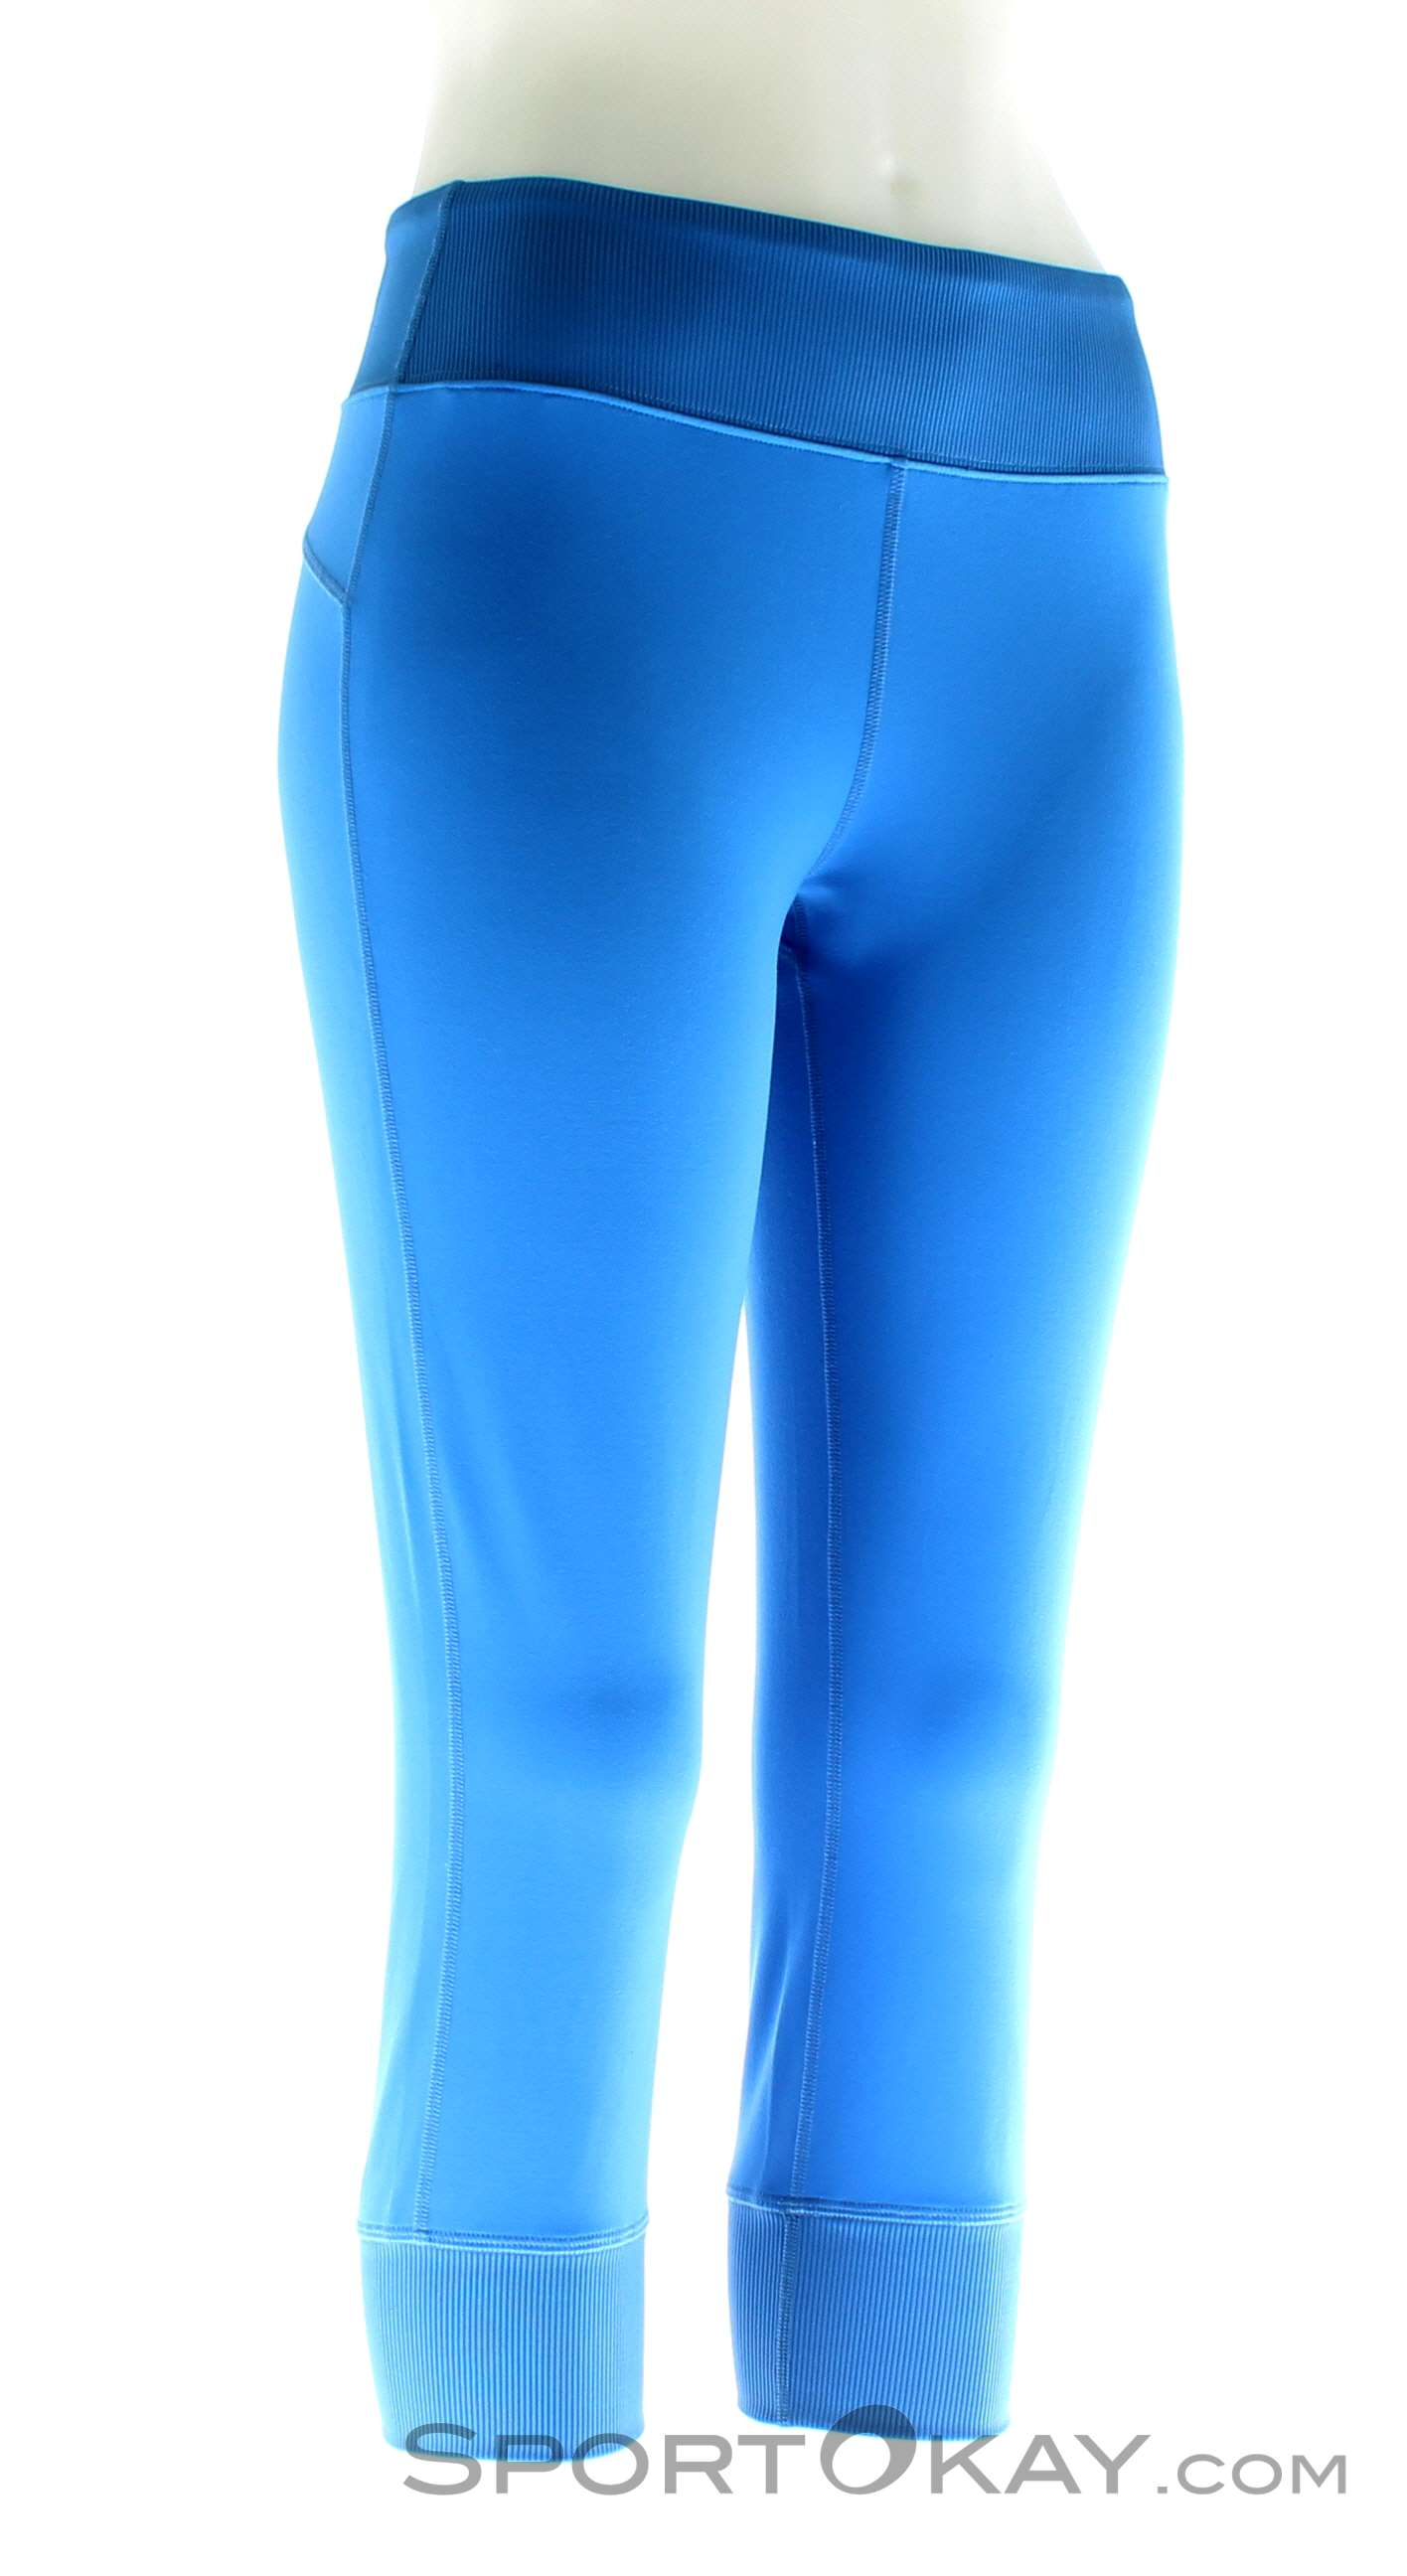 Black Diamond Levitation Capris Damen Kletterhose, Black Diamond, Blau, , Damen, 0056-10609, 5637580029, 793661299363, N1-01.jpg